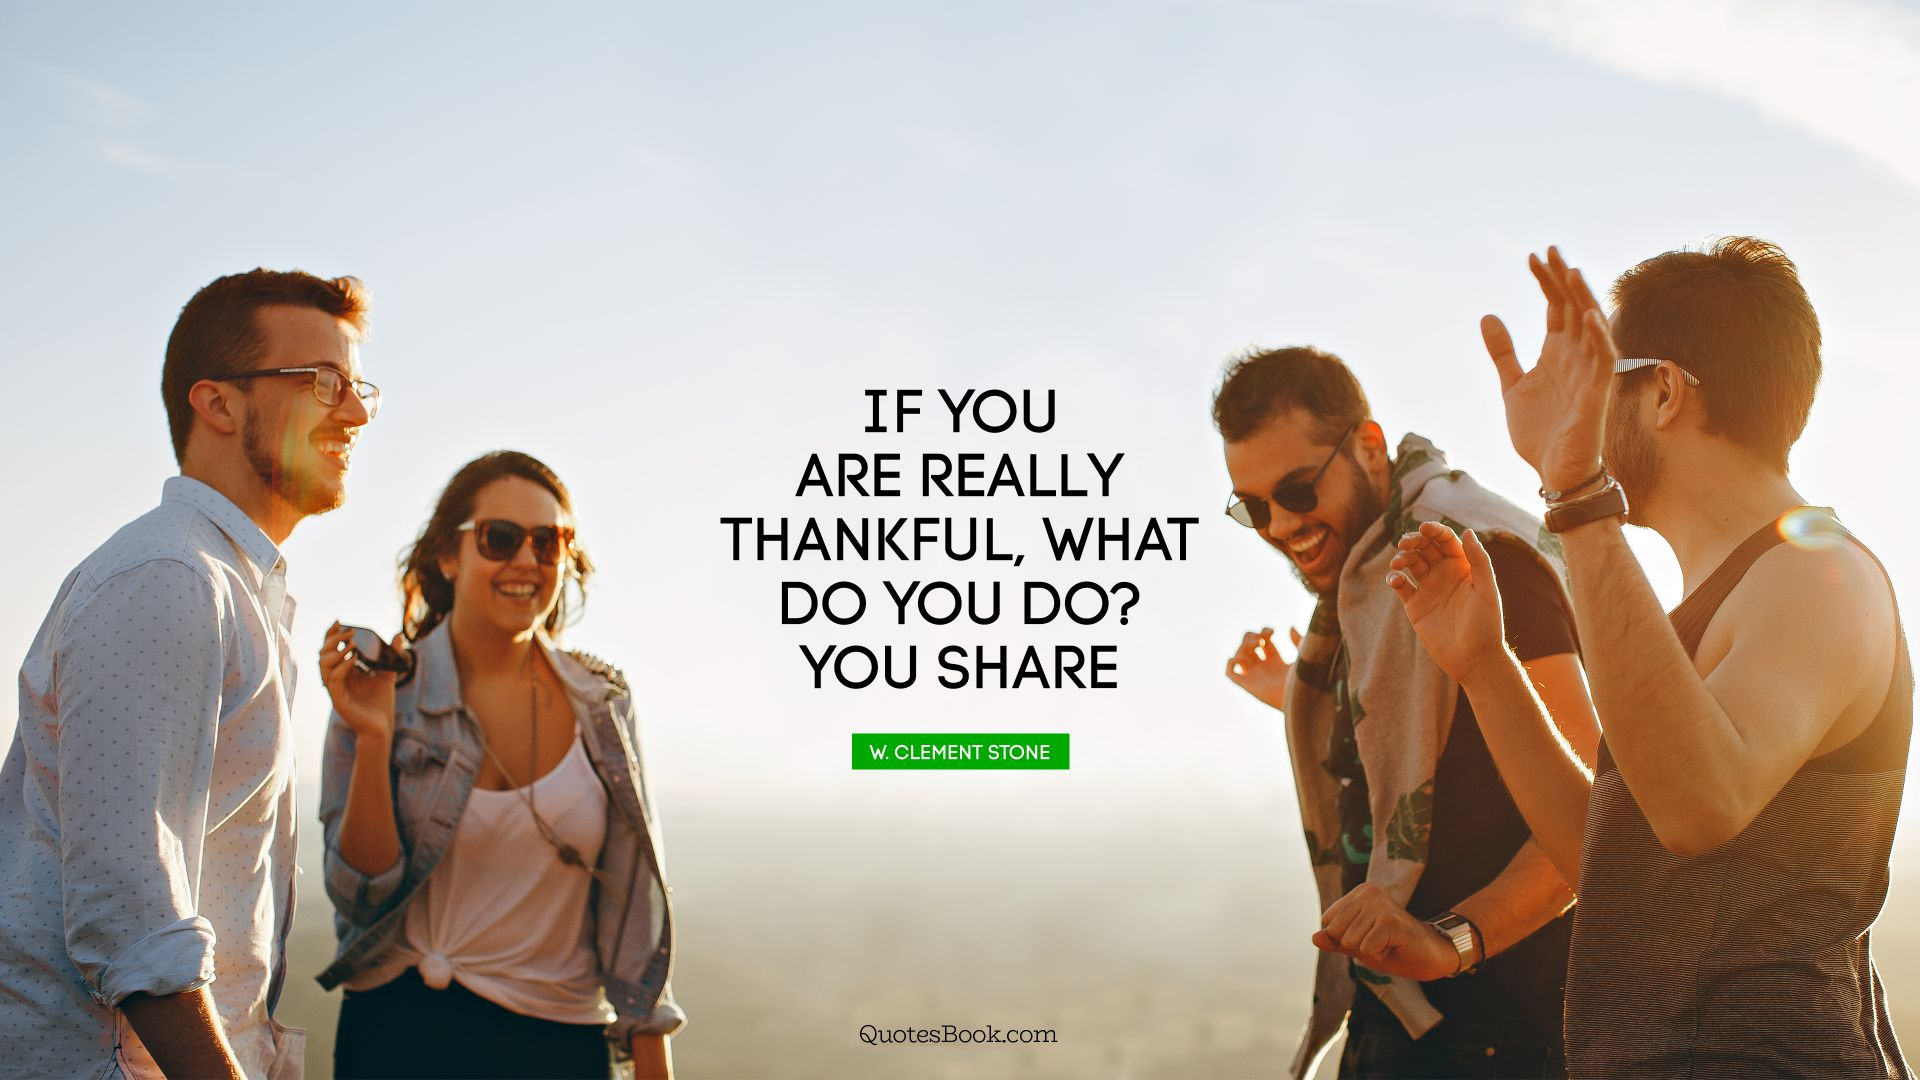 If you are really thankful, what do you do? You share. - Quote by W. Clement Stone